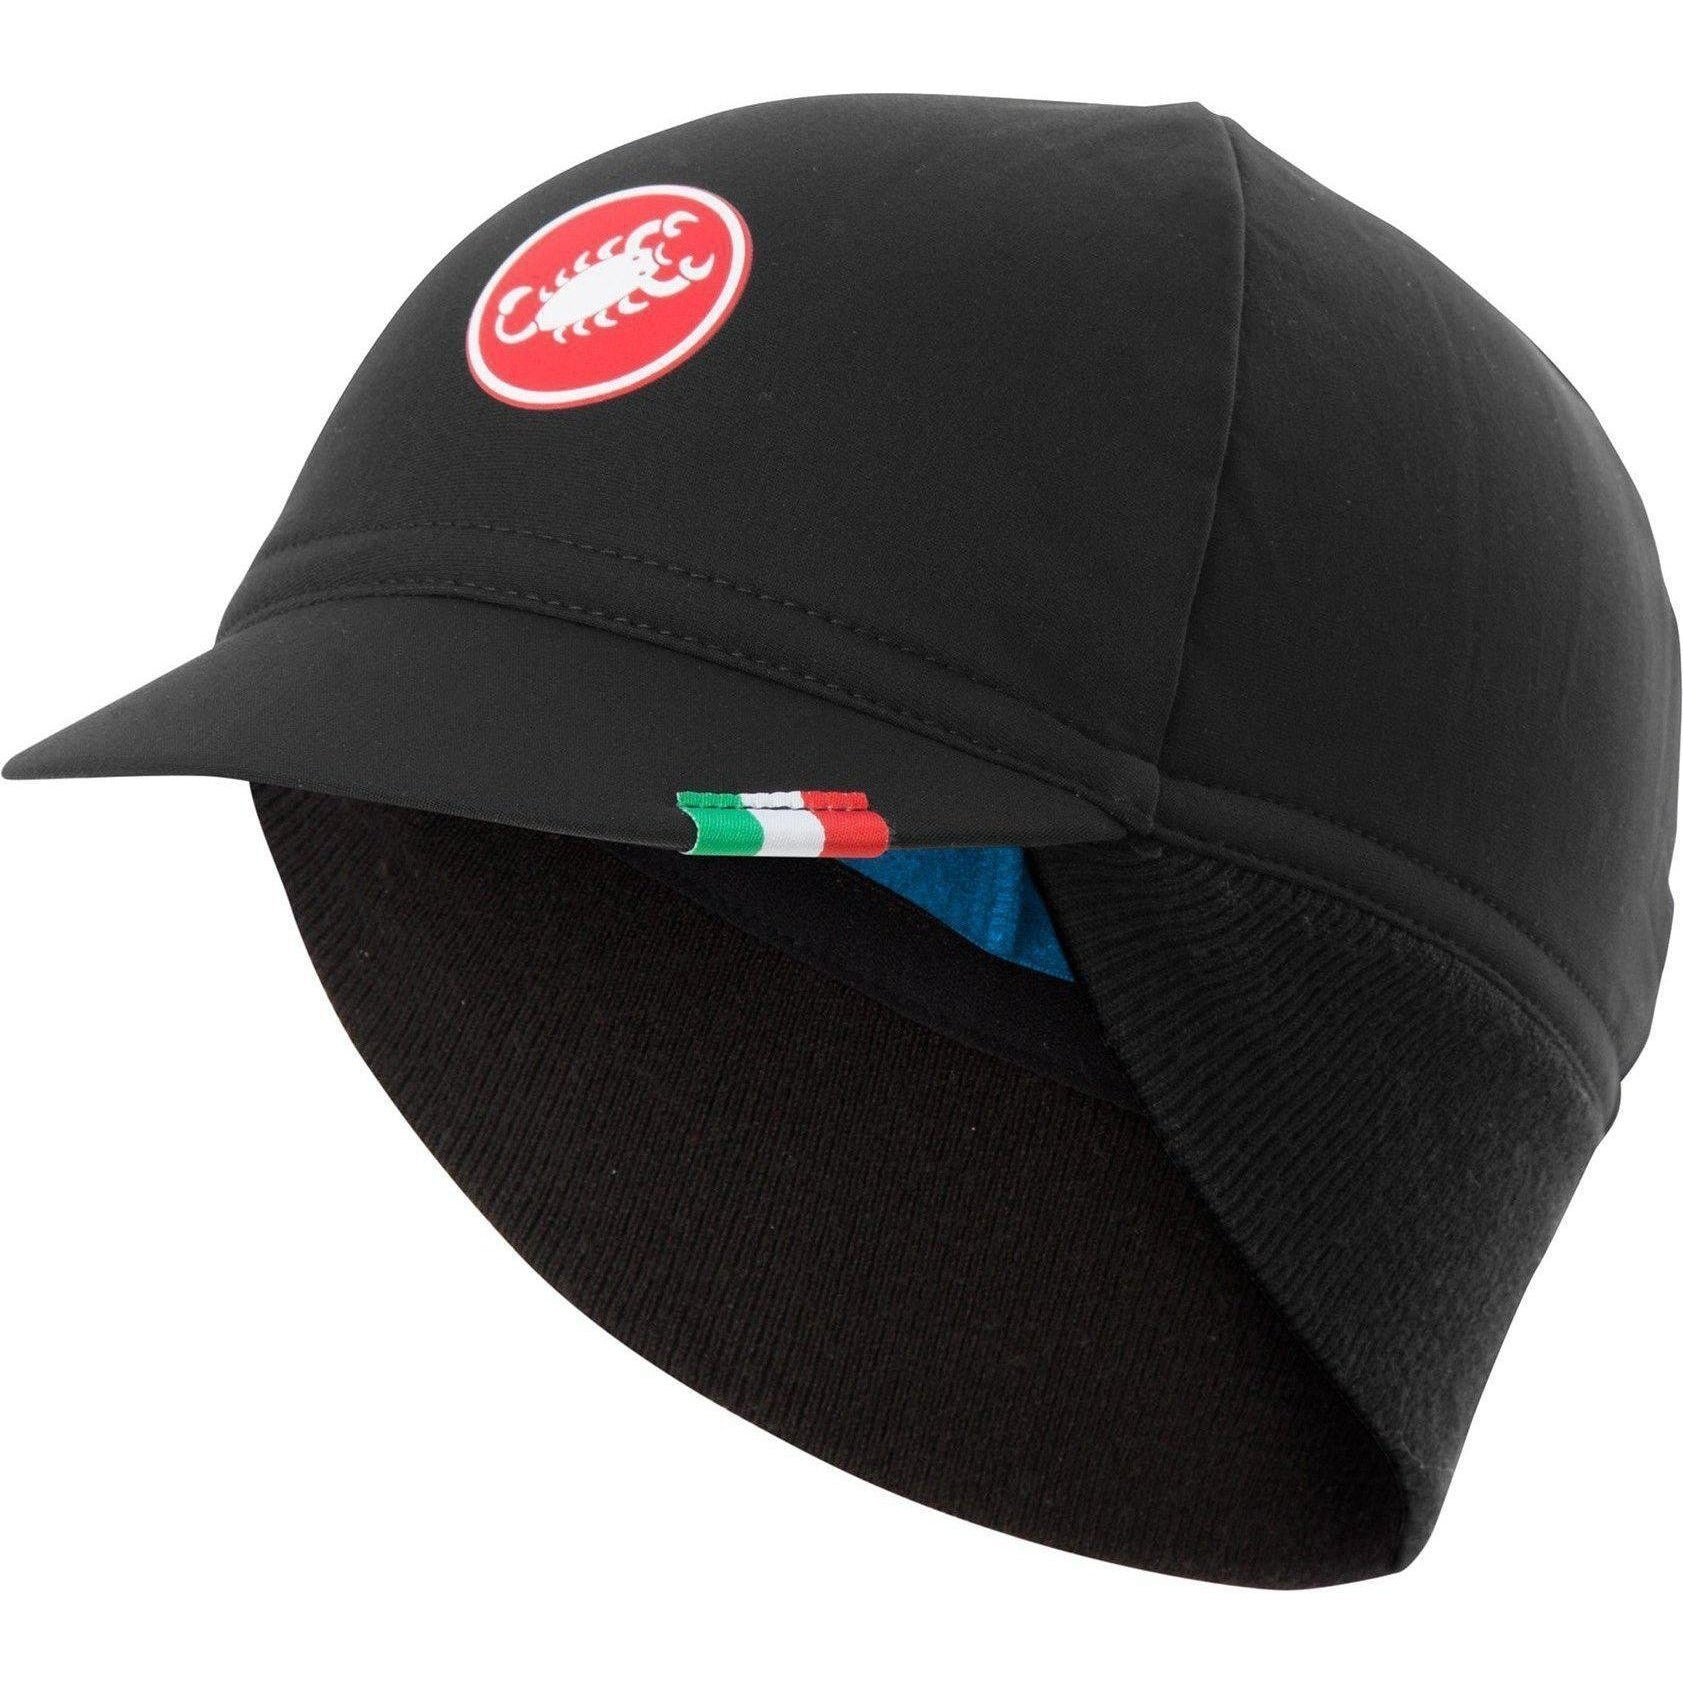 Castelli-Castelli Difesa Thermal Cap-Black/Red Lining-UNI-CS185340108-saddleback-elite-performance-cycling